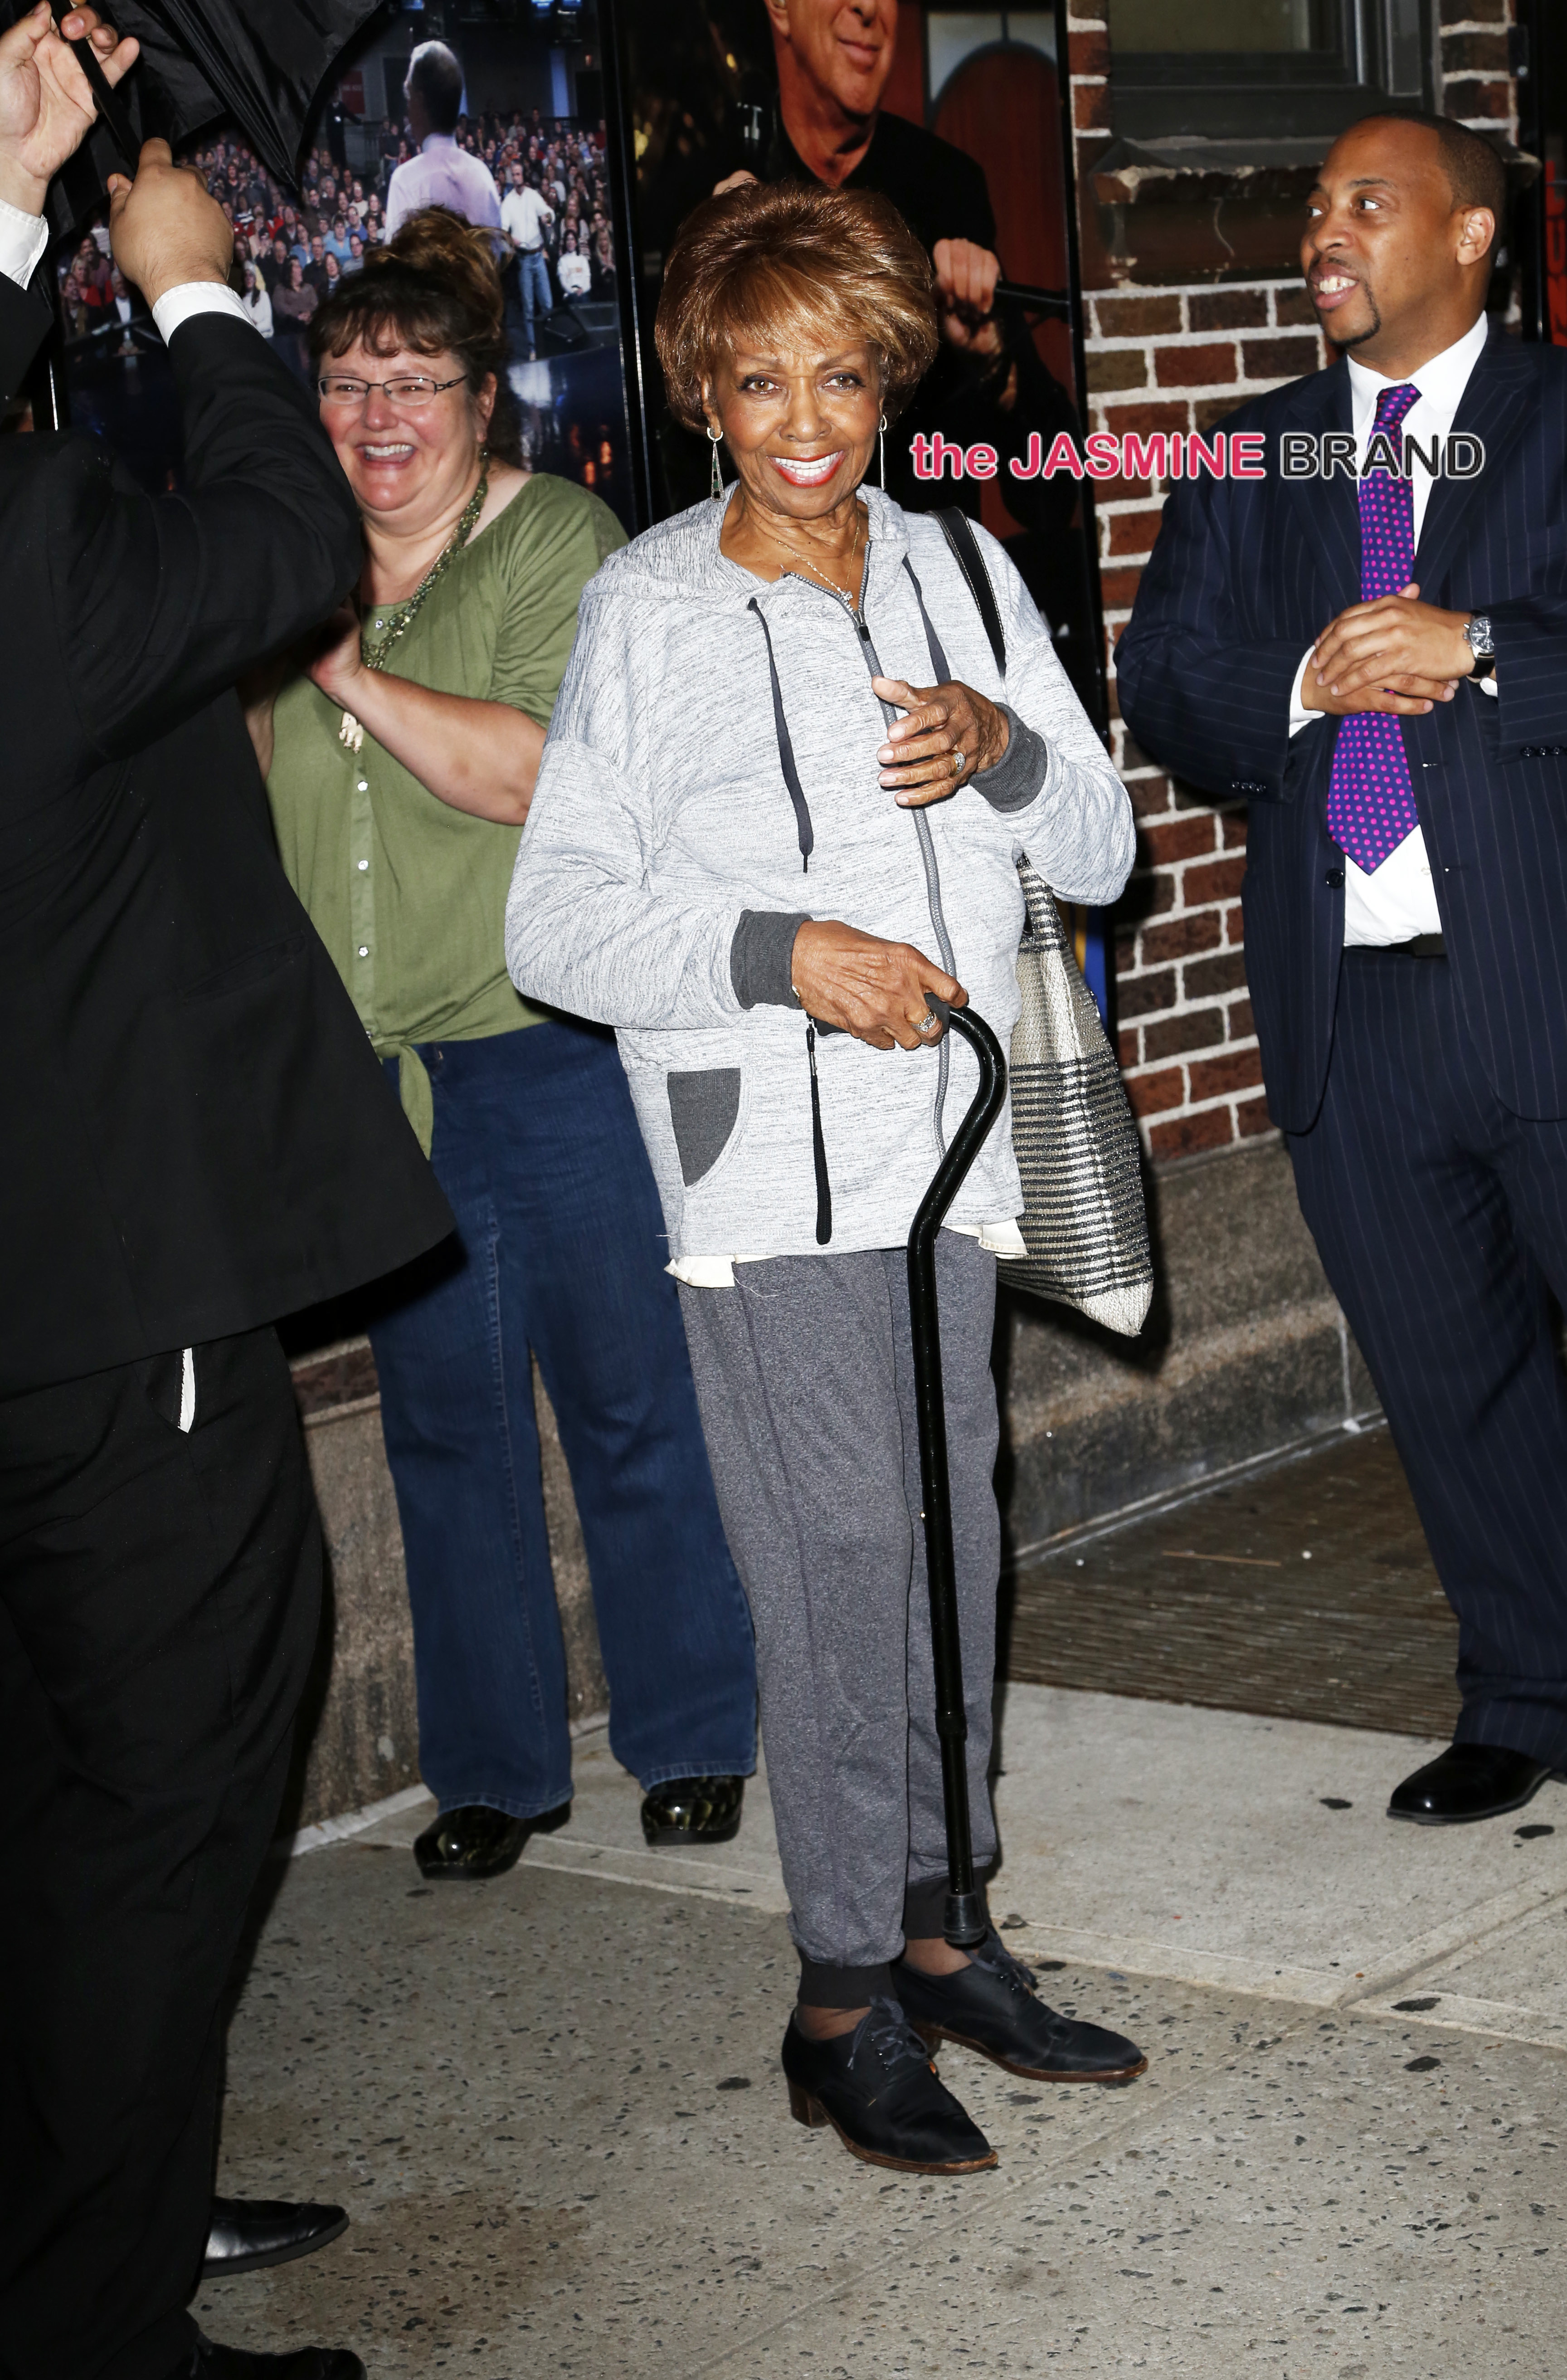 Cissy Houston visits 'The Late Show with David Letterman' in NYC